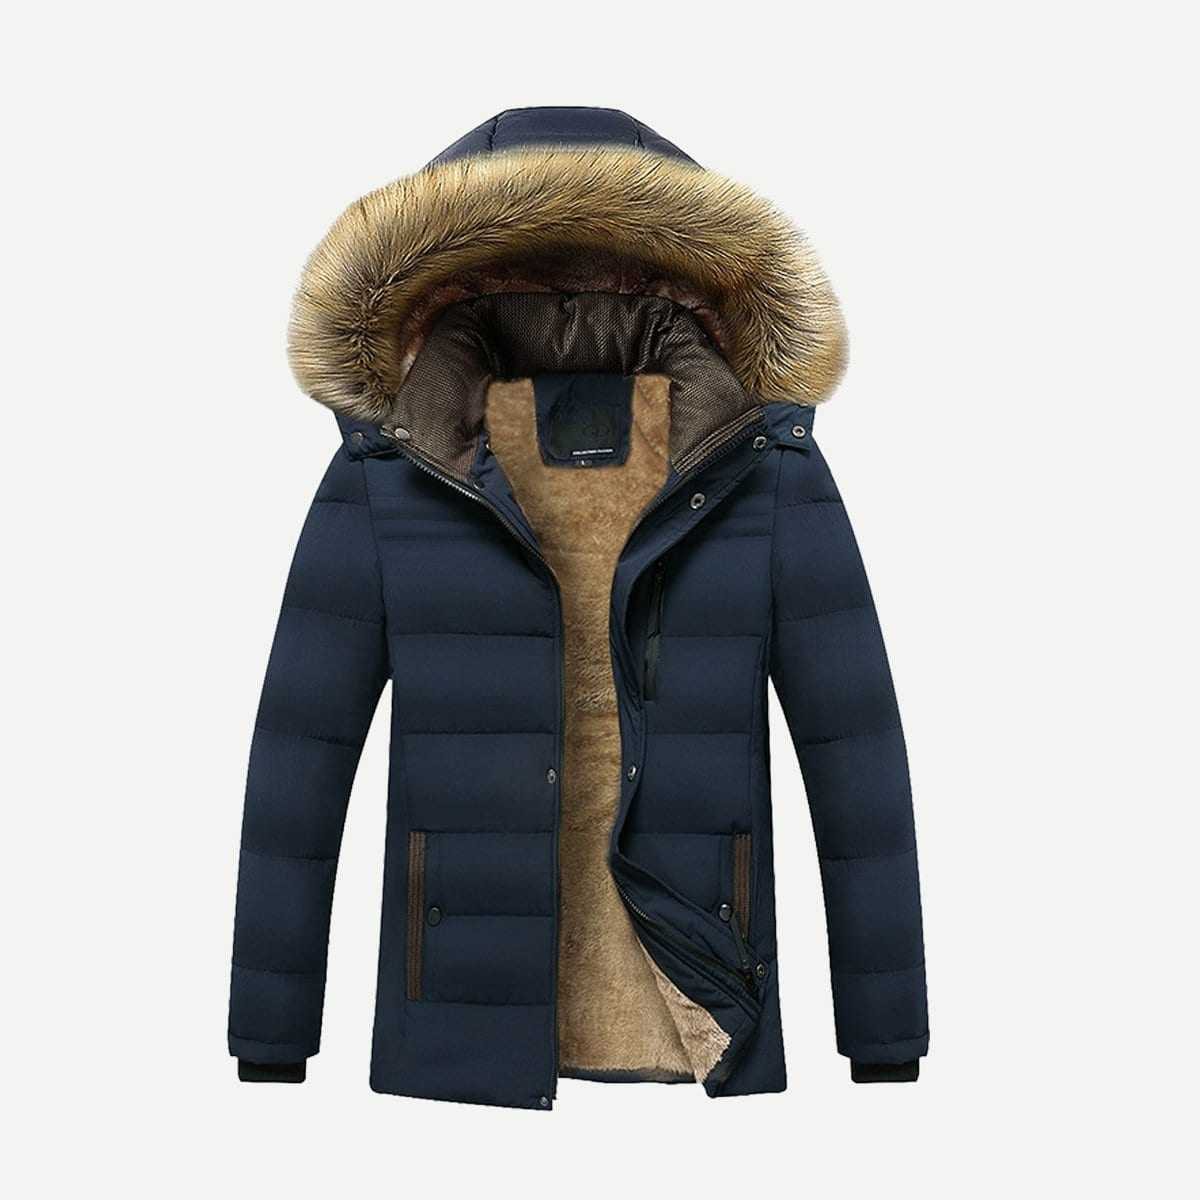 Guys Fleece Lined Solid Hooded Puffer Coat in Navy by ROMWE on GOOFASH